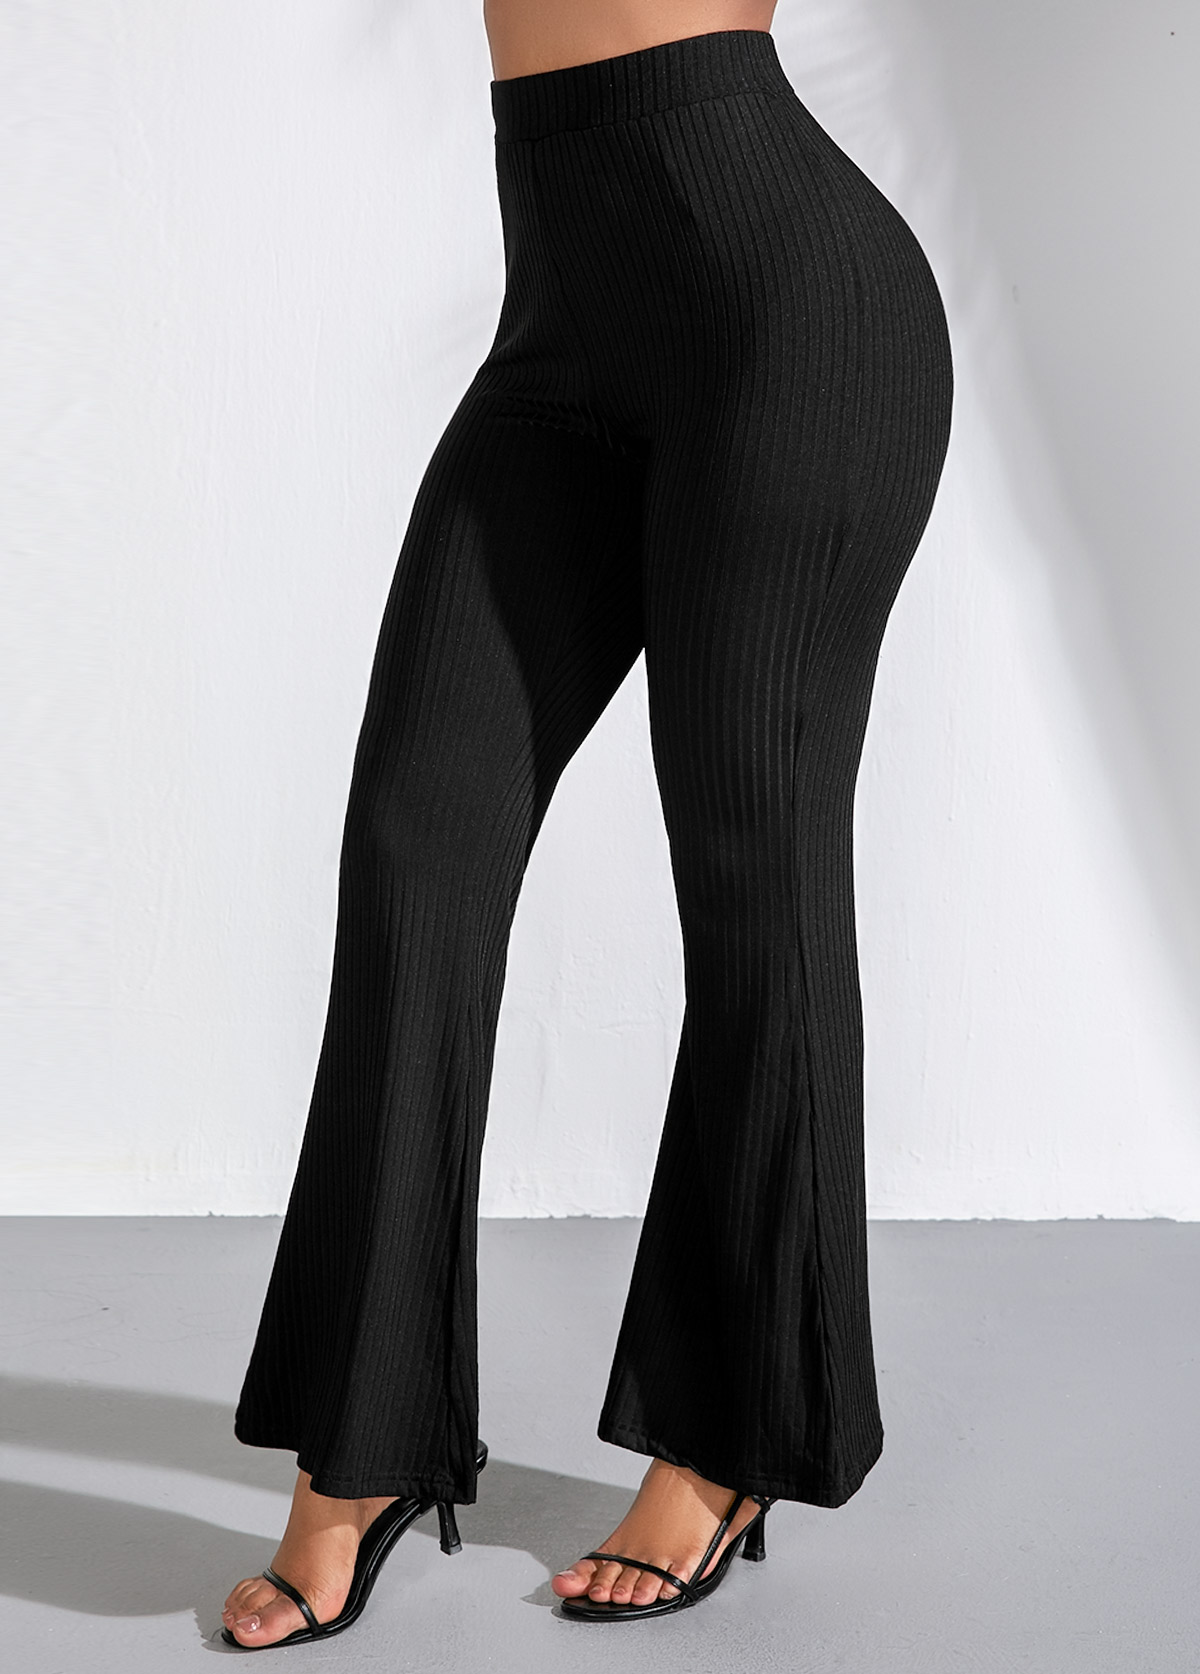 Black High Waist Elastic Flare Pants